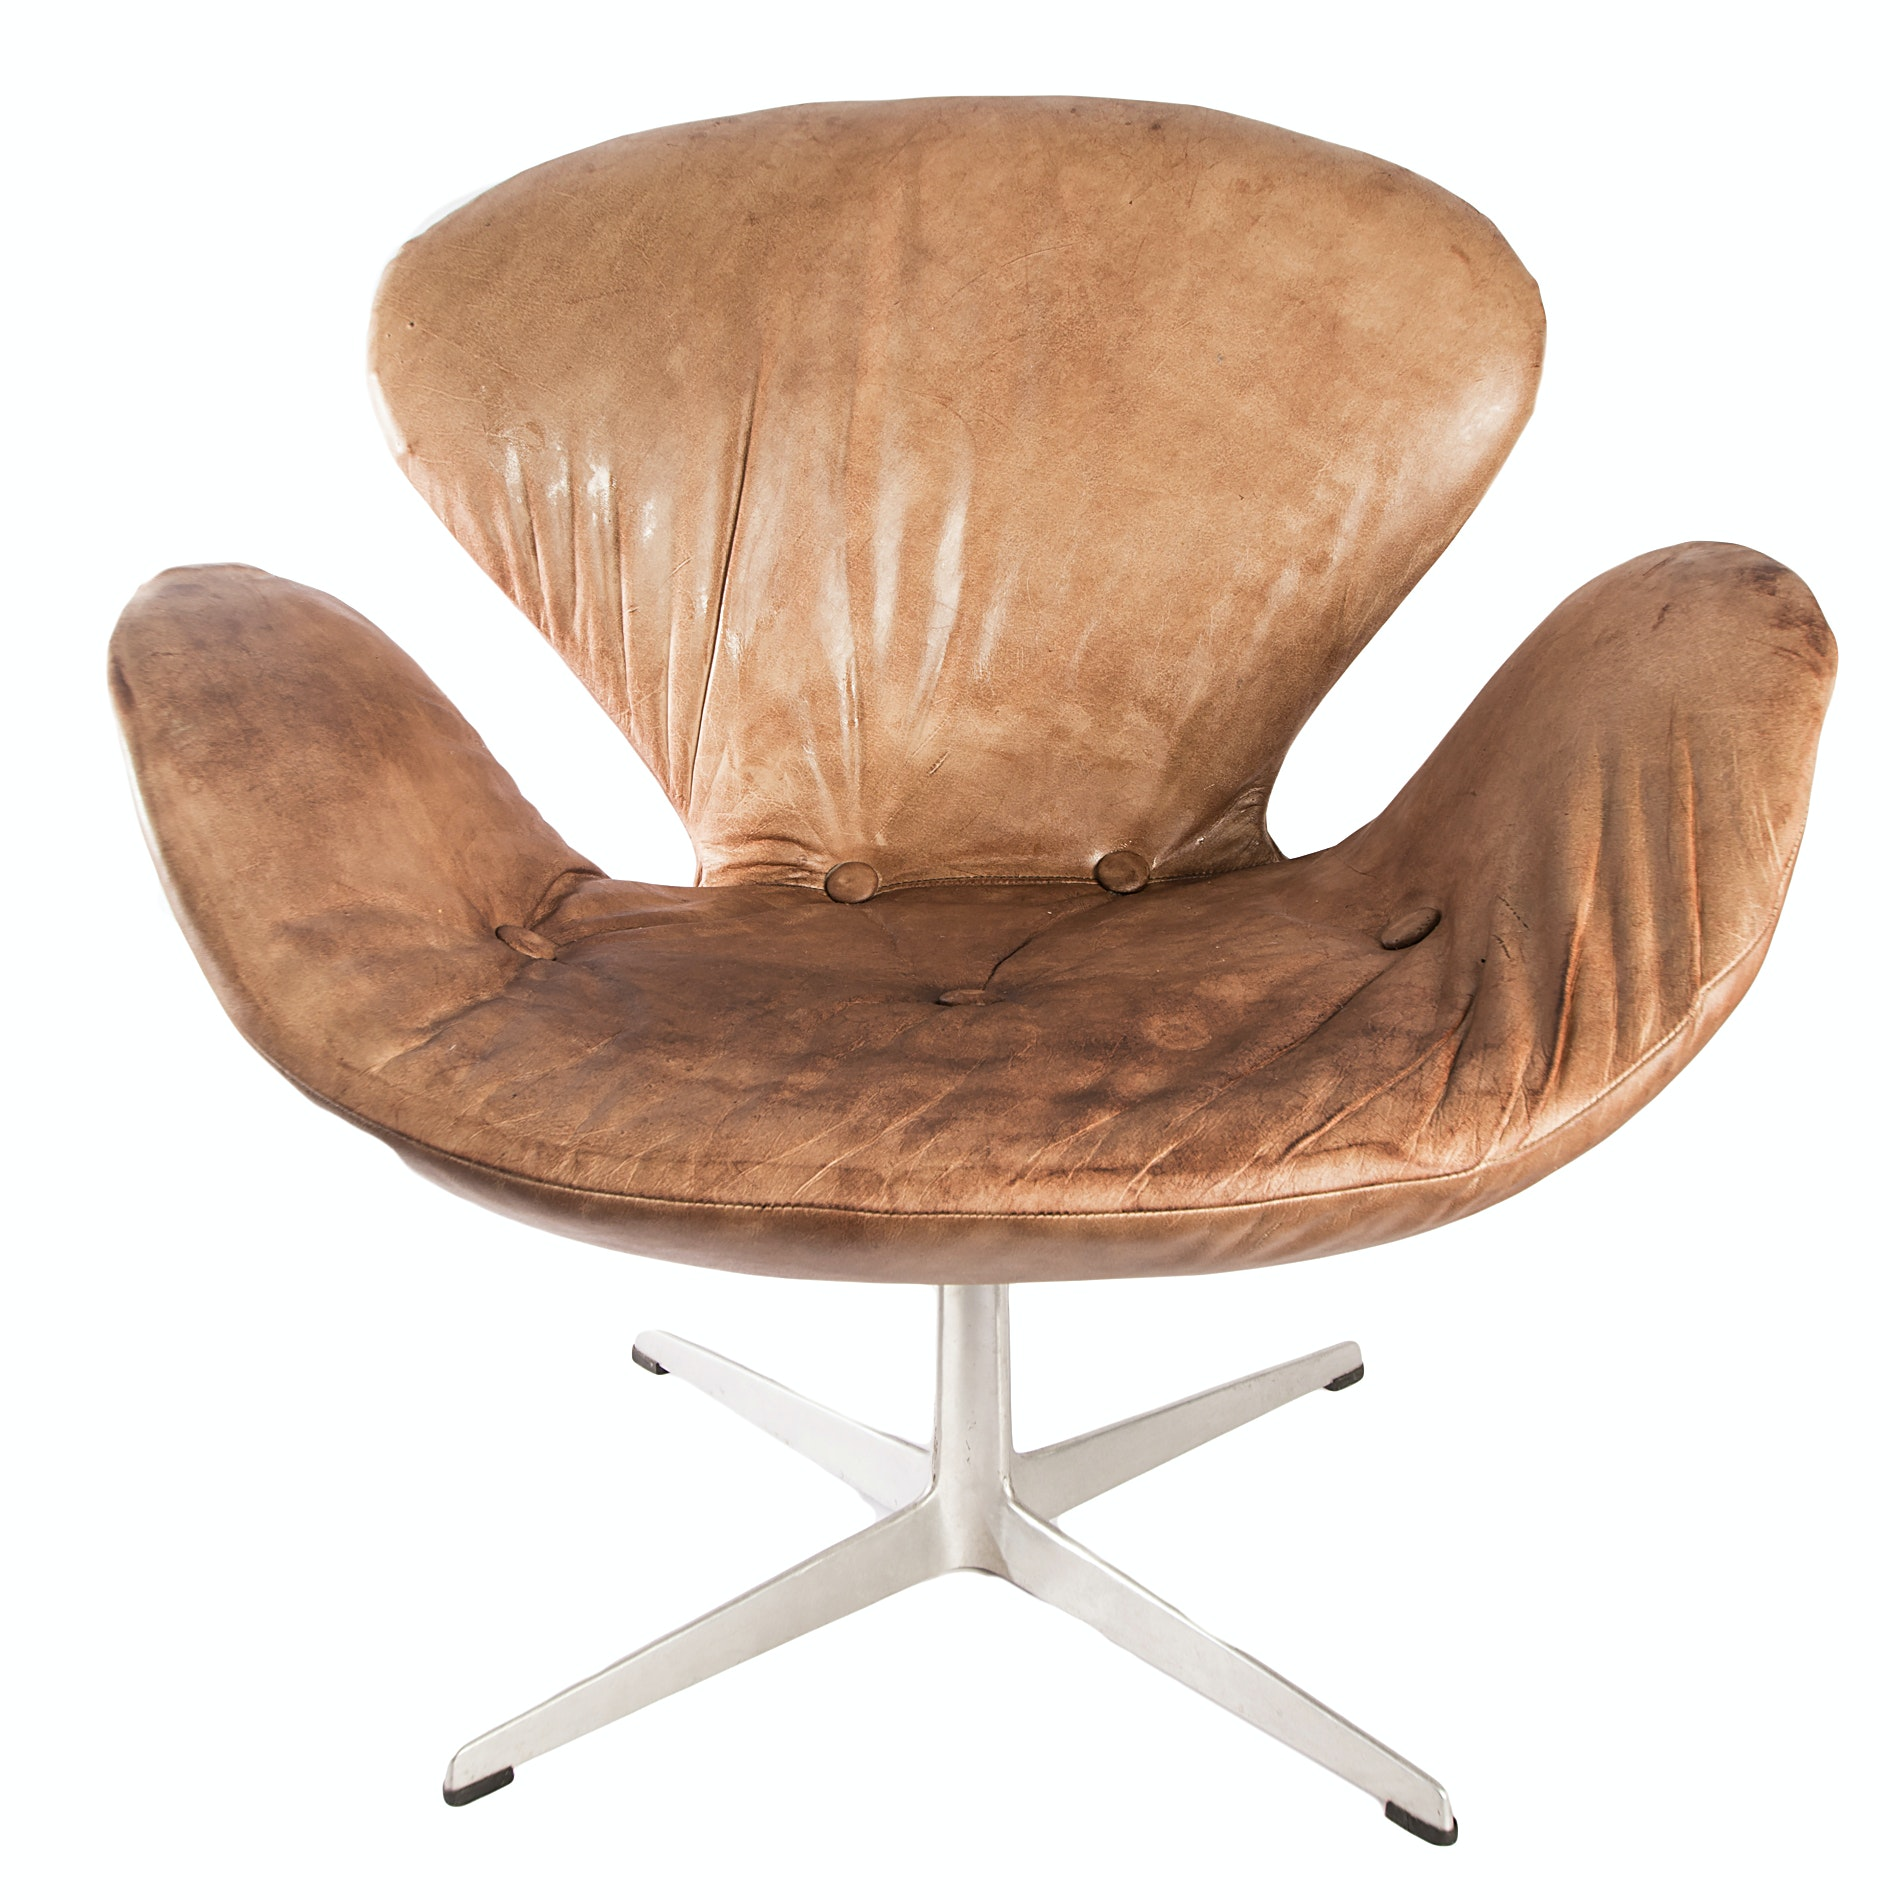 Swan Chair Designed by Arne Jacobsen Fritz Hansen